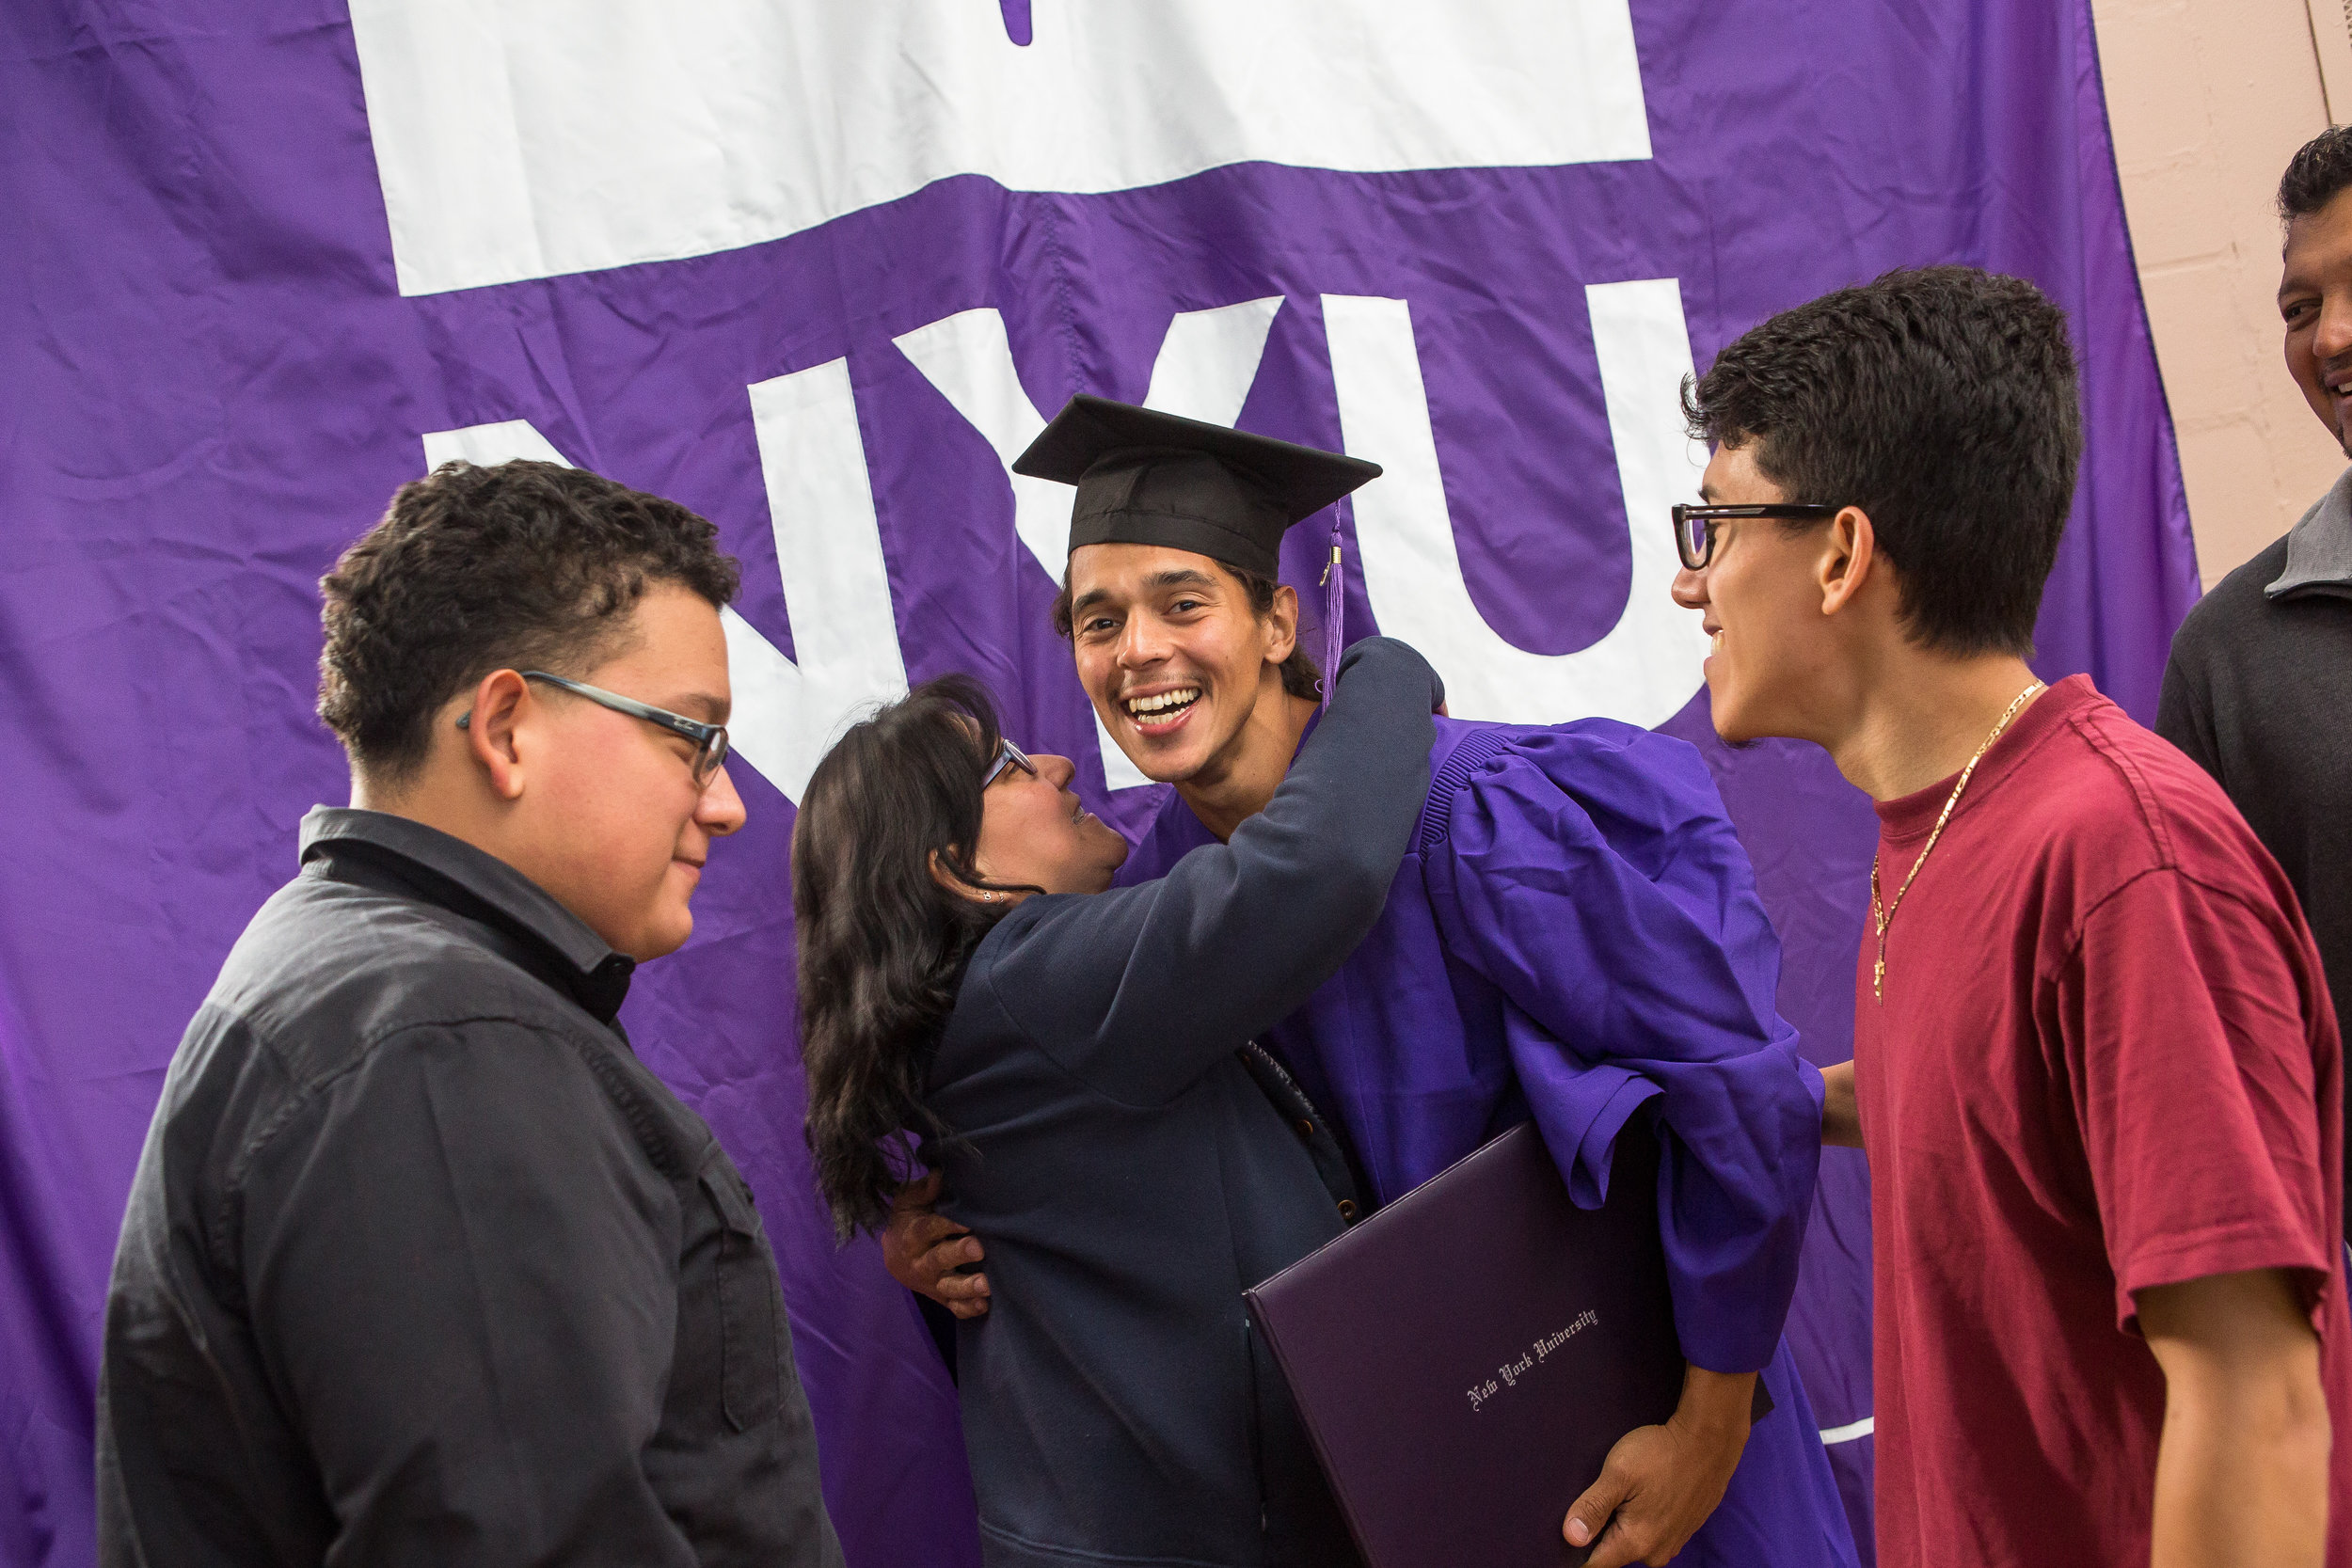 """Danis Flores is embraced by family after the ceremony.""""I've been given a second chance,"""" Danis said. """"I want to make something out of myself. I need to become somebody."""""""